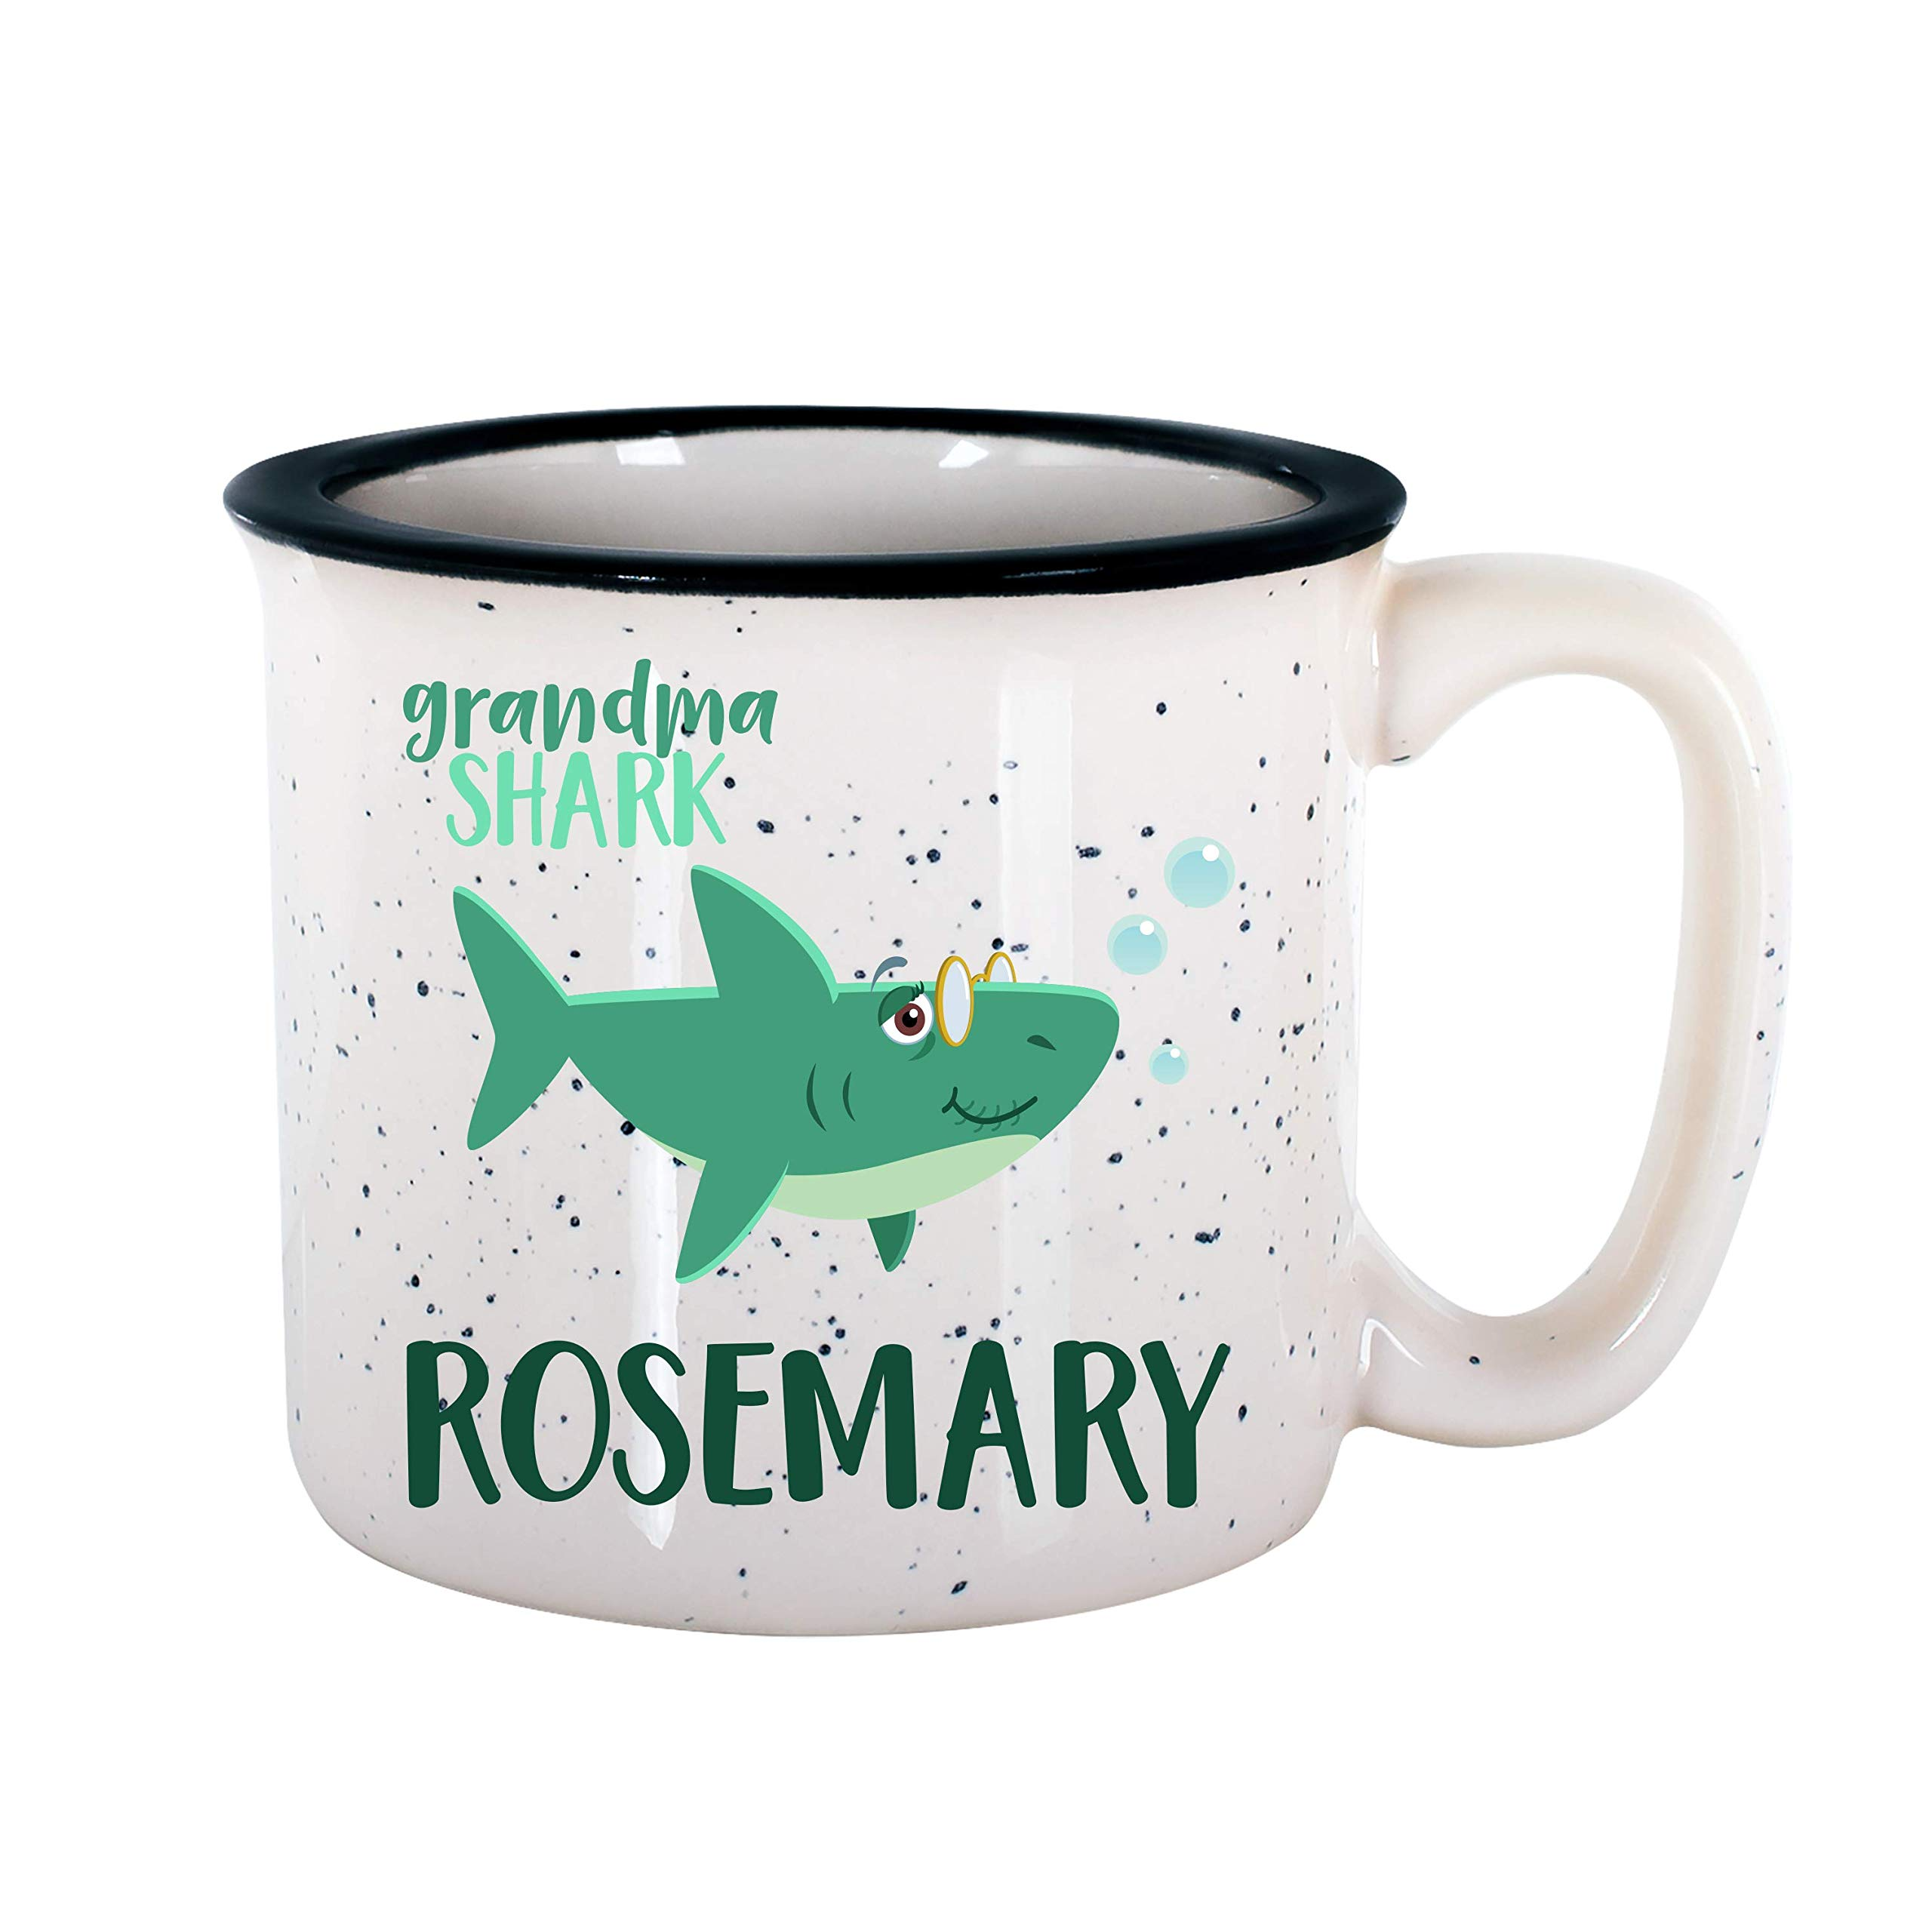 Personalized Gifts Shark Family Coffee Mug - 16oz Camp Style Ceramic Mug -Birthday Gifts, Christmas Gifts, Mother's Day - Baby, Boy, Girl, Mommy, Daddy, Grandma, Grandpa Sharks